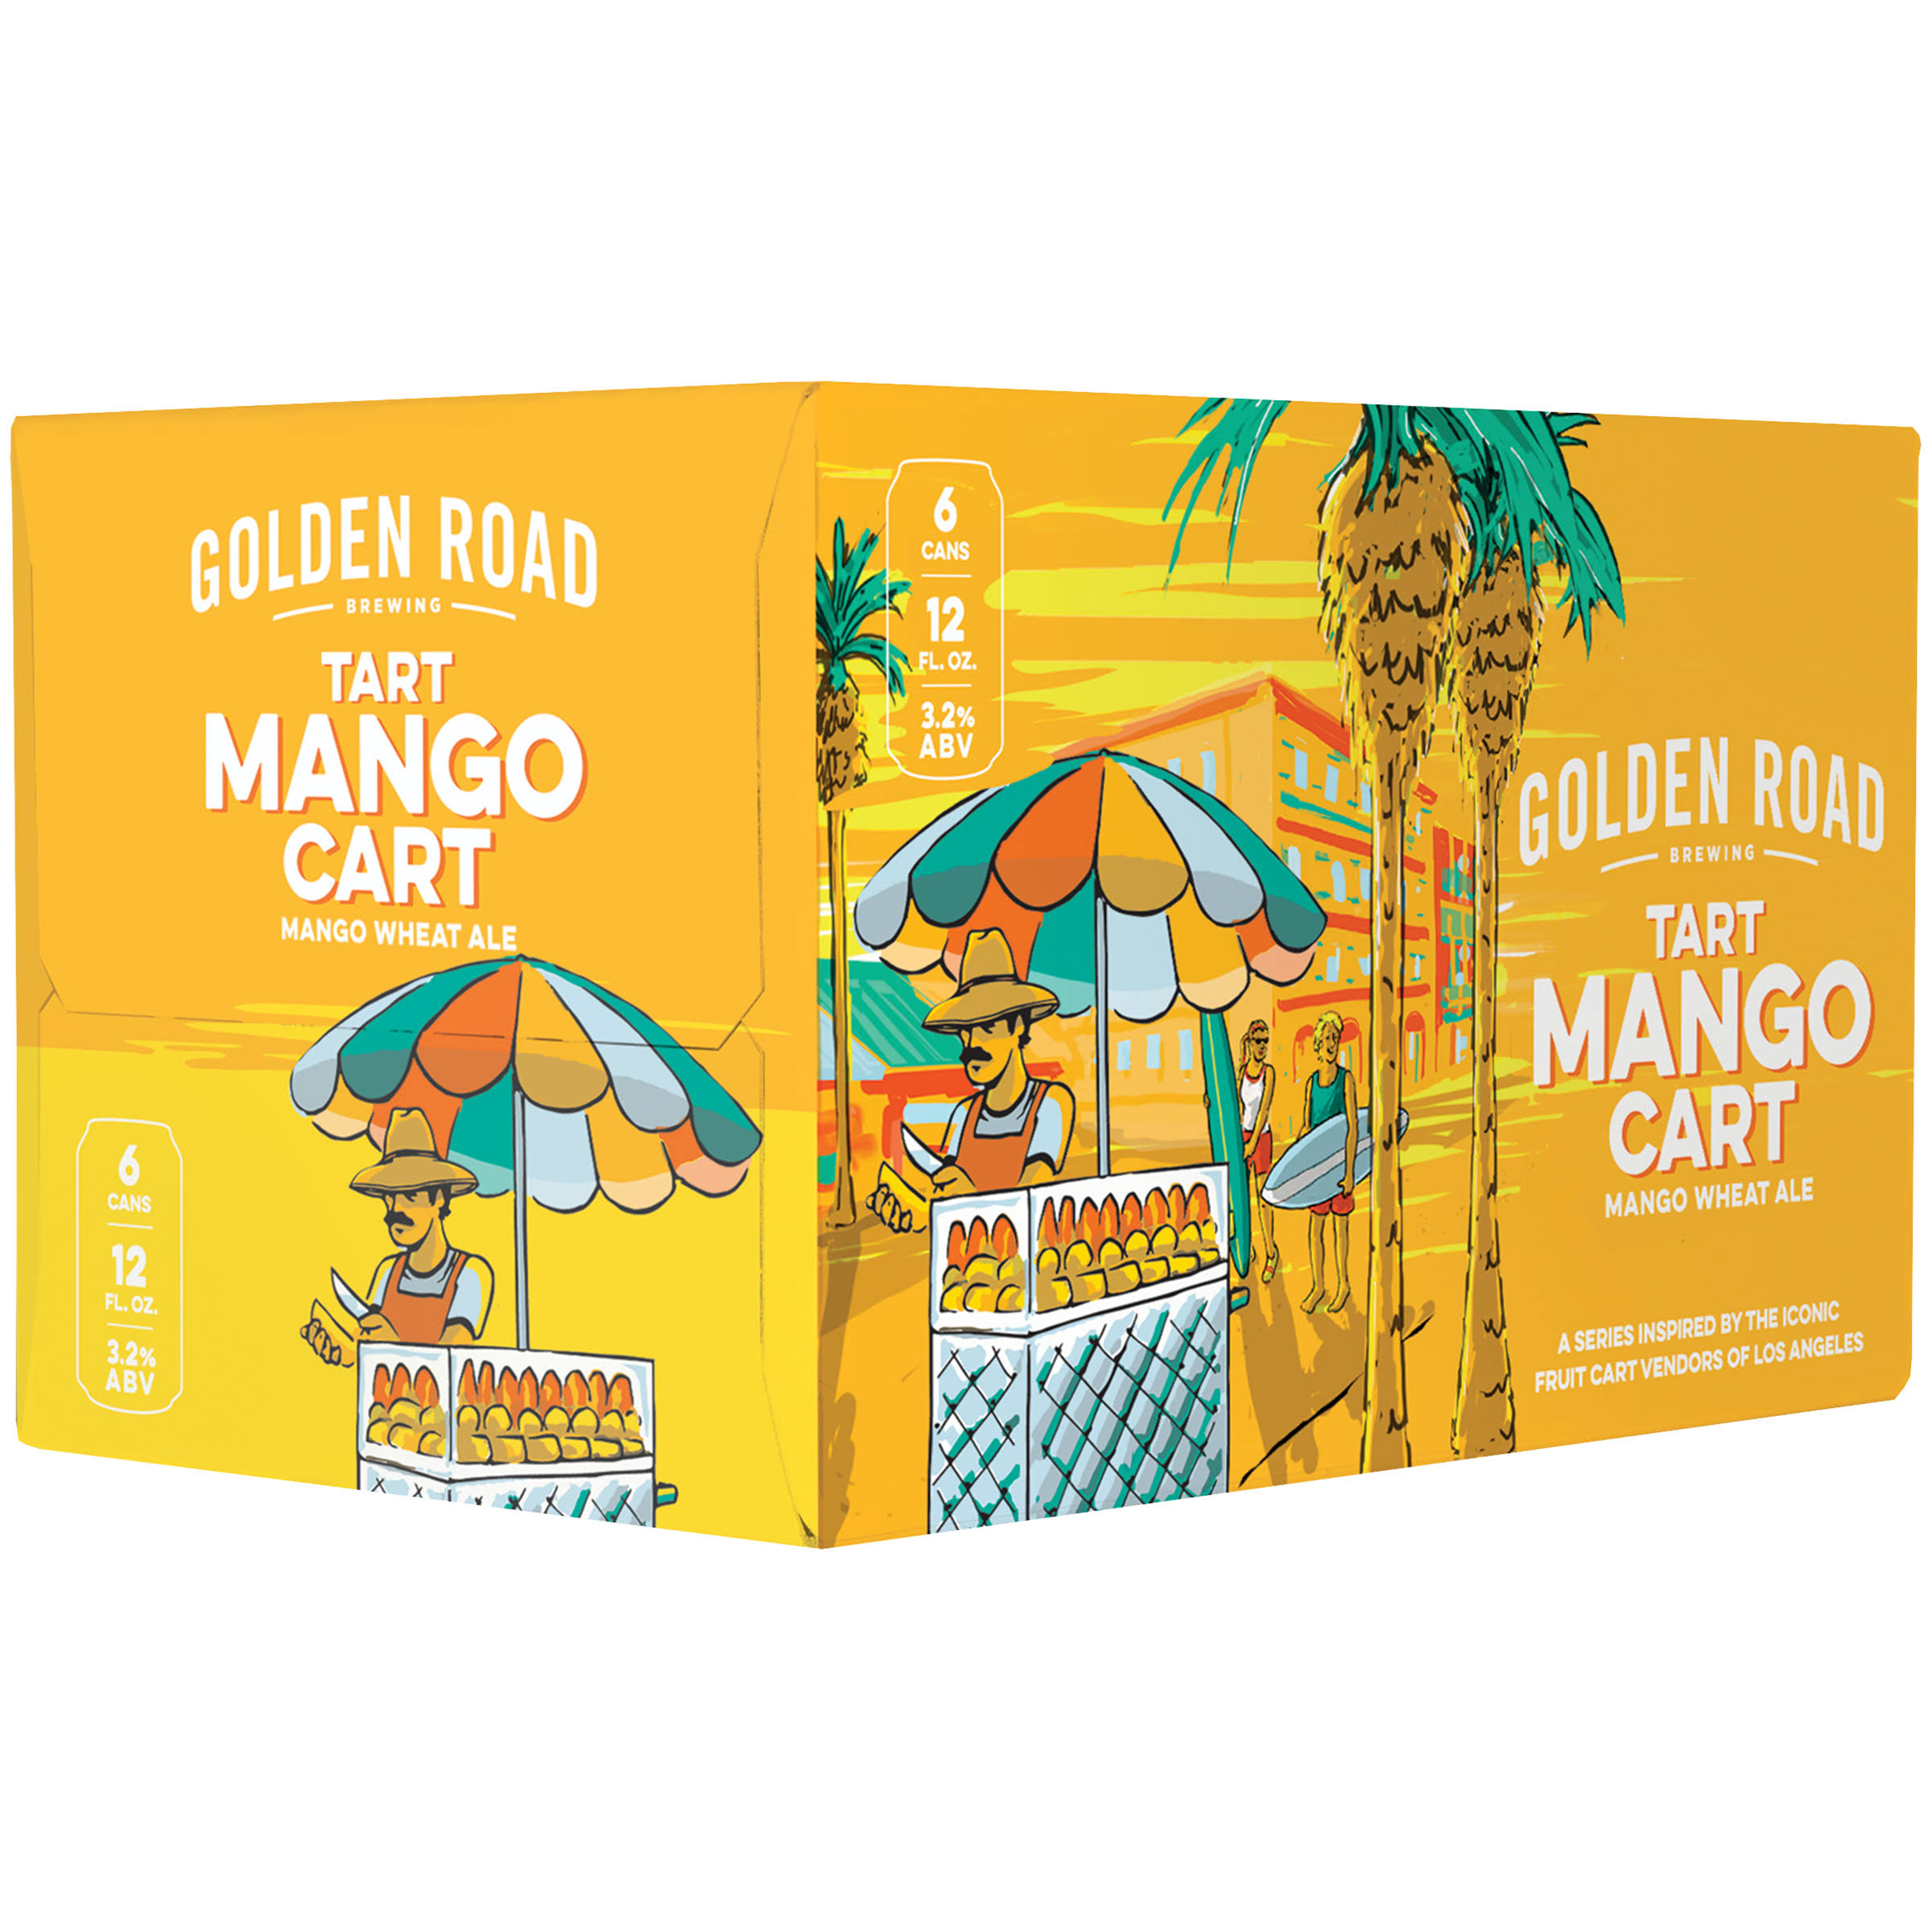 Golden Road Mango Cart Tart Wheat Ale 6 Pack Cans